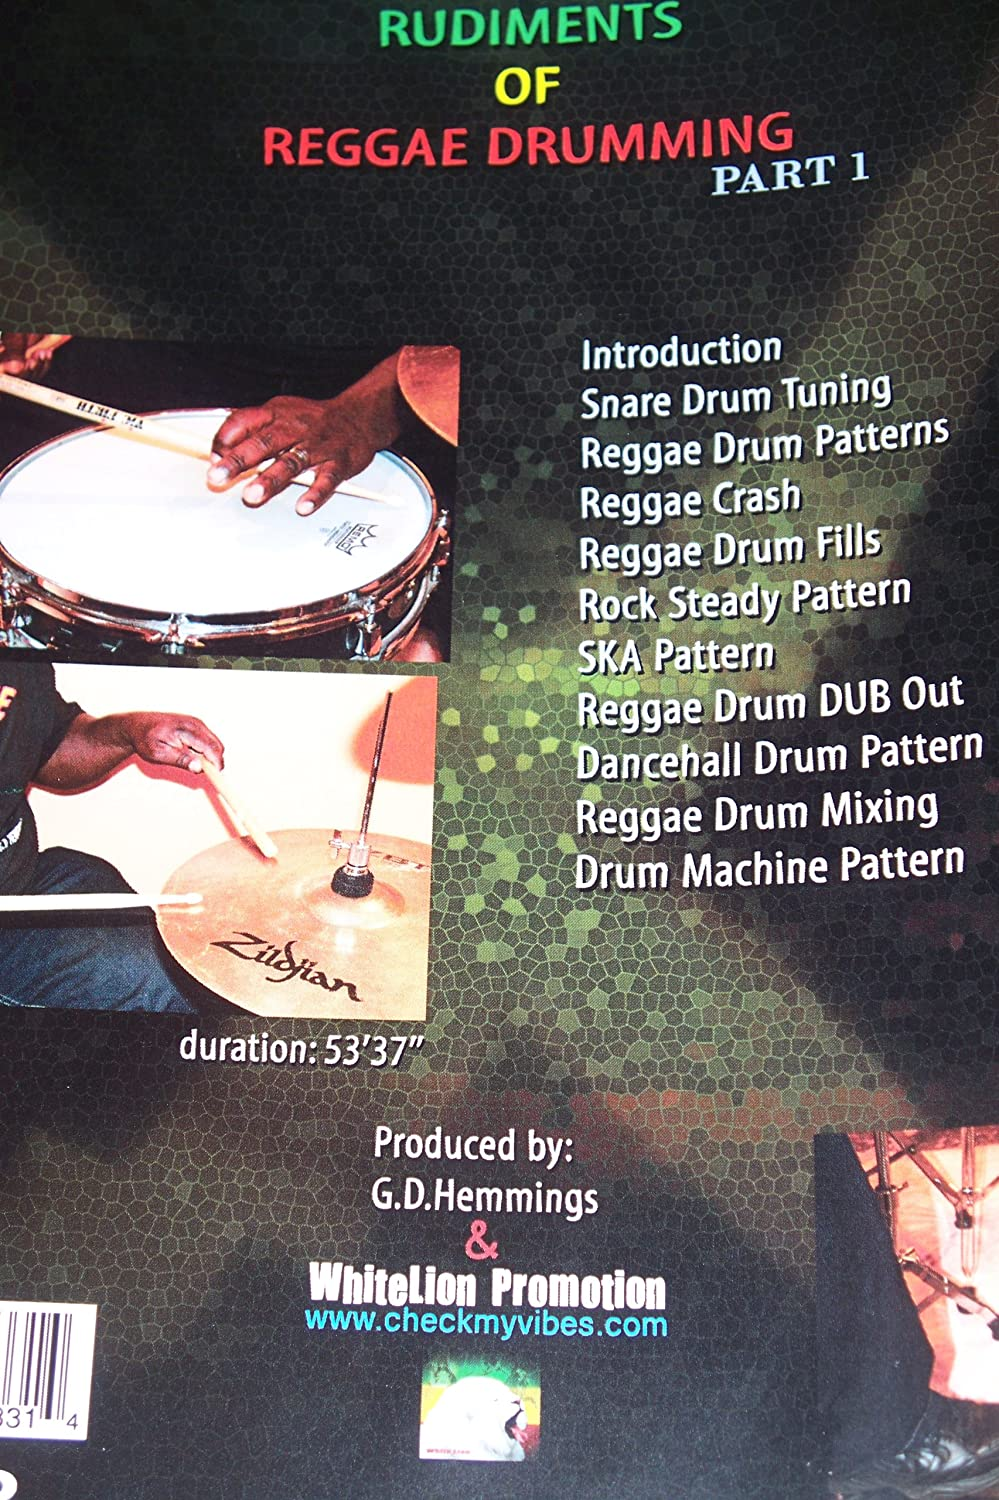 Rudiments Of Reggae Drumming P1 By G D Hemmings Pro Reggae